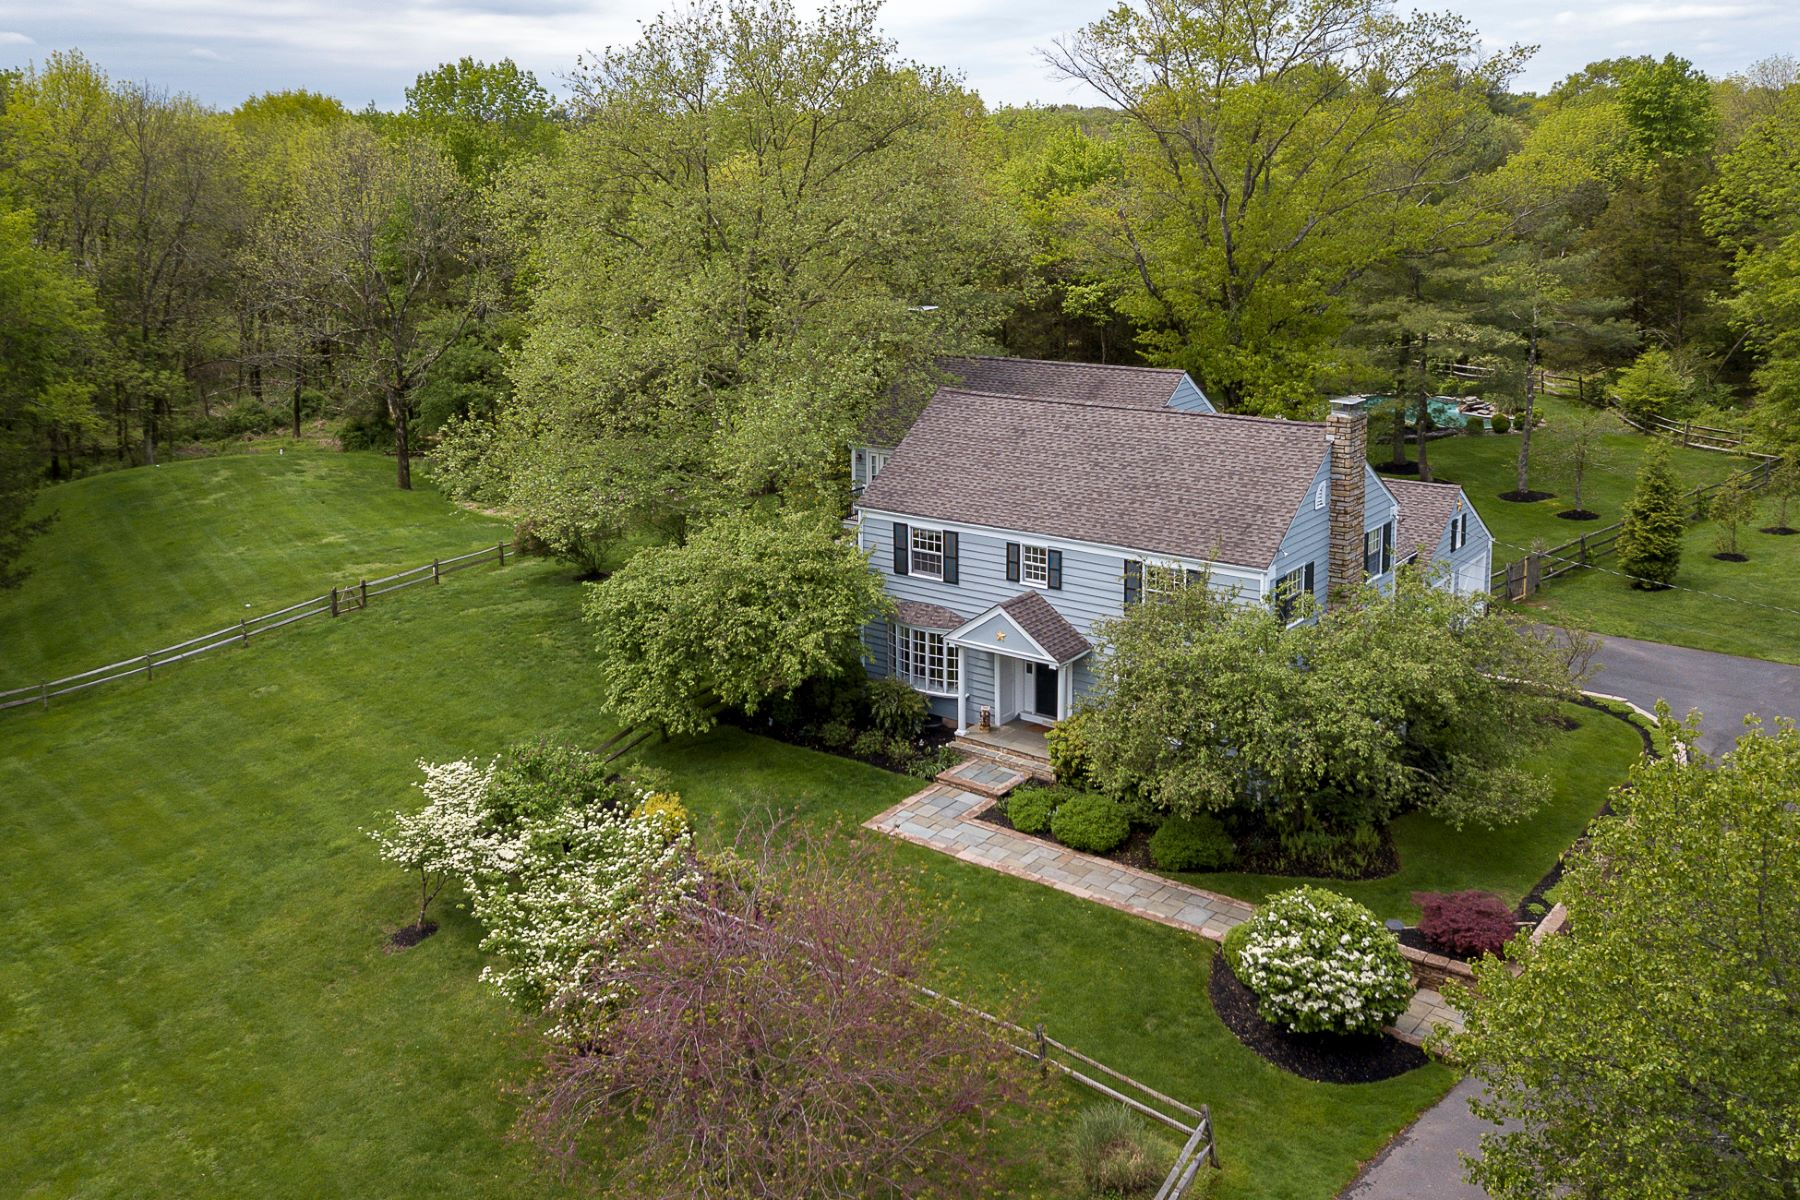 Single Family Homes for Sale at Sycamore Sky, a Serene 8-Acre Paradise 40 Bayberry Road, Princeton, New Jersey 08540 United States